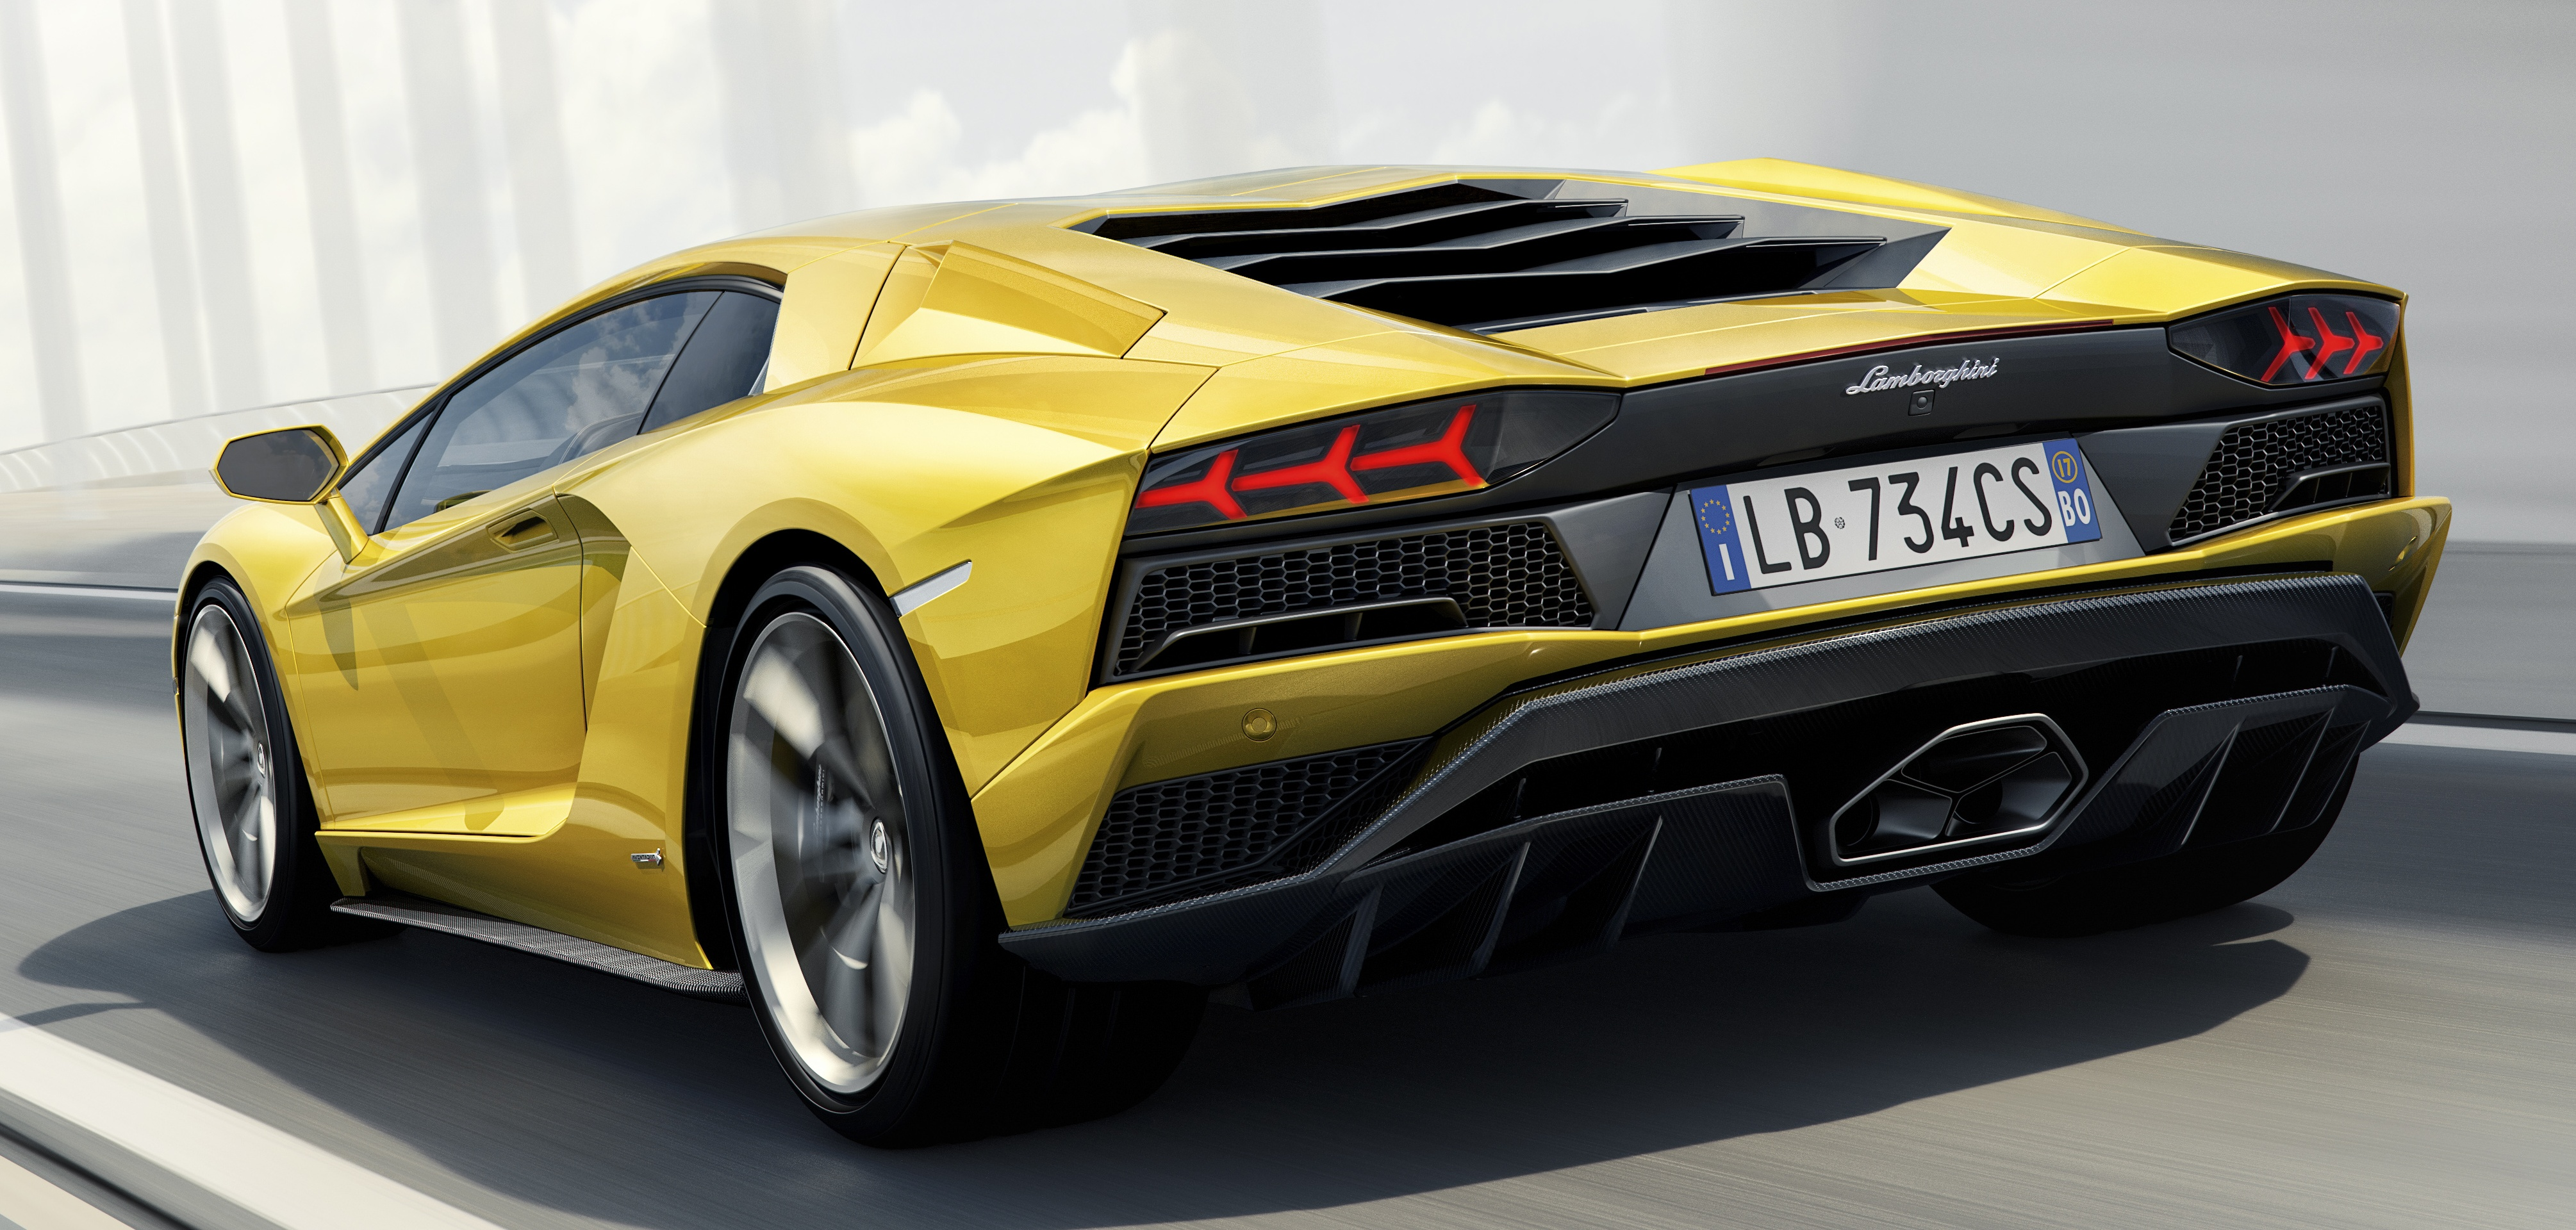 Good News You Can Now Buy The New Lamborghini Aventador S In